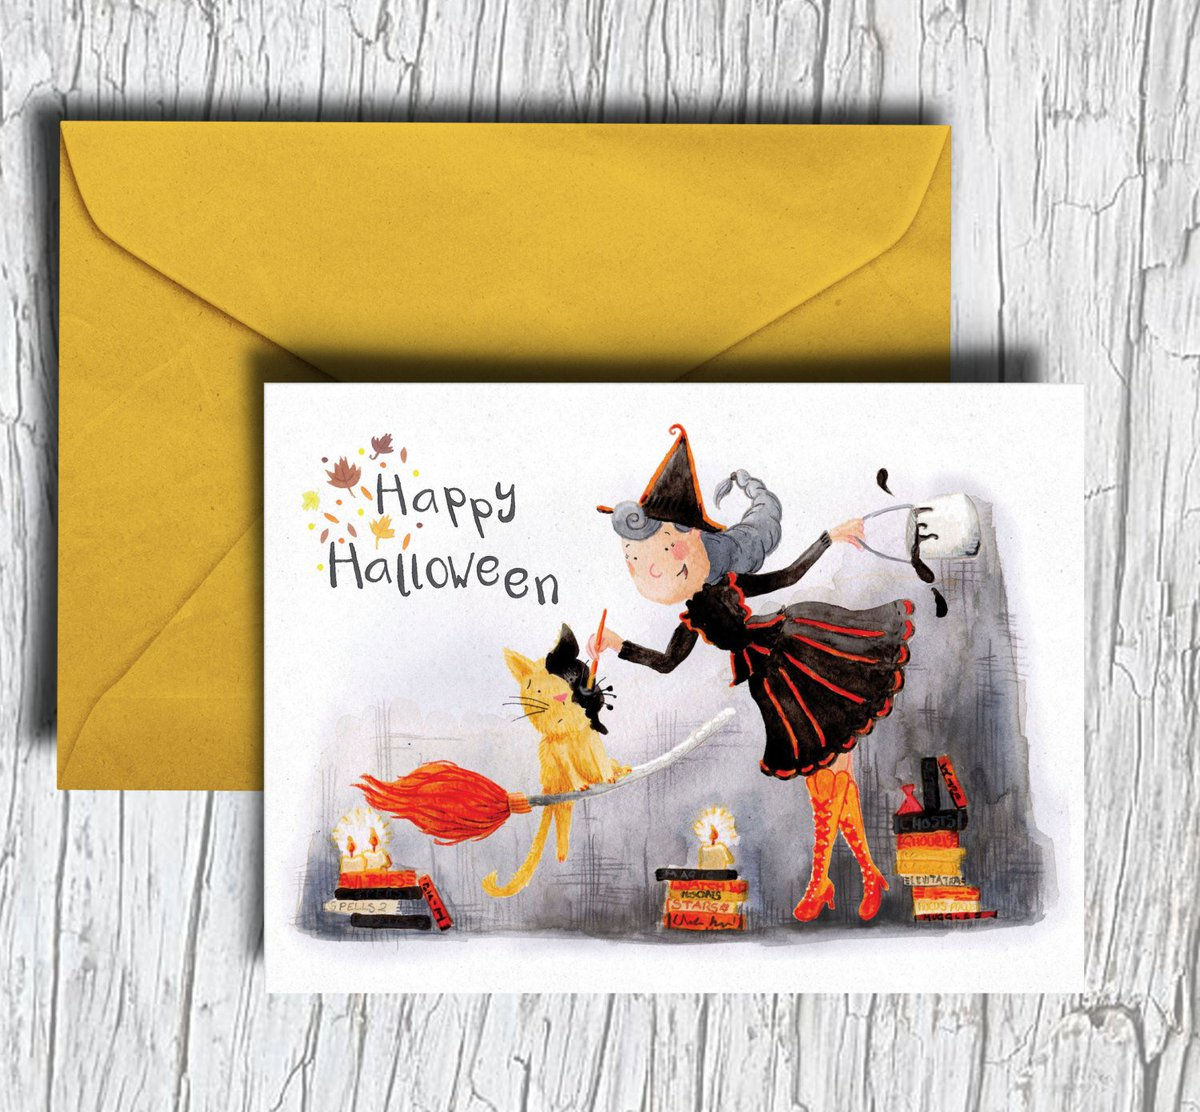 Get prepped and ready for #Halloween with this little #card! Shop:  http:// ow.ly/c1fd30fe9GP  &nbsp;   #justacard #witch #greetingcard #happyhalloween<br>http://pic.twitter.com/xIPDQCmgZ8